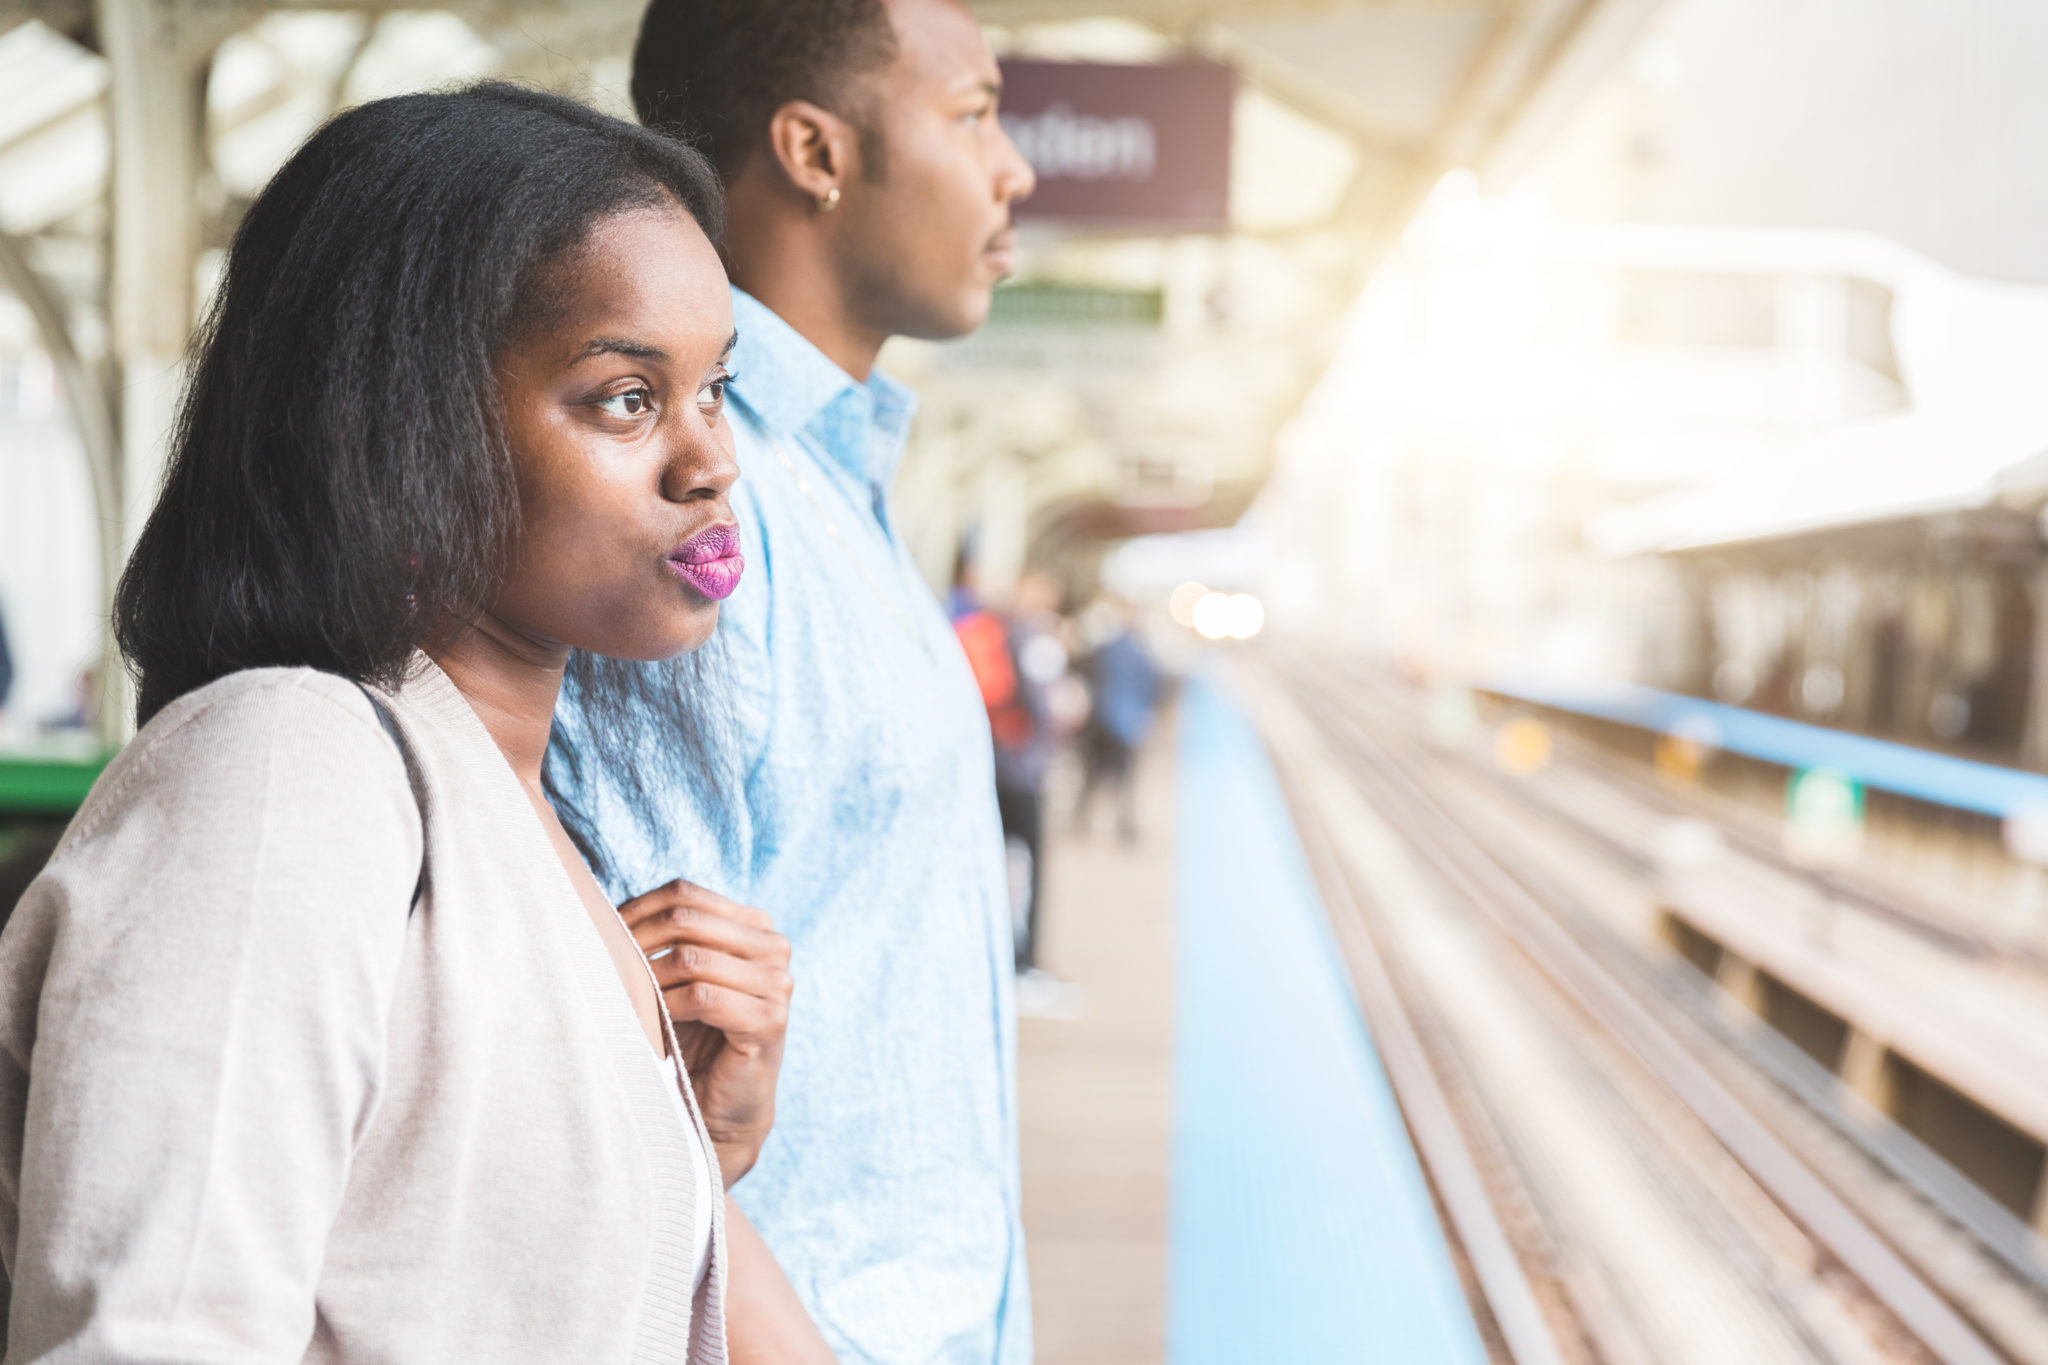 Black couple at subway station in Chicago